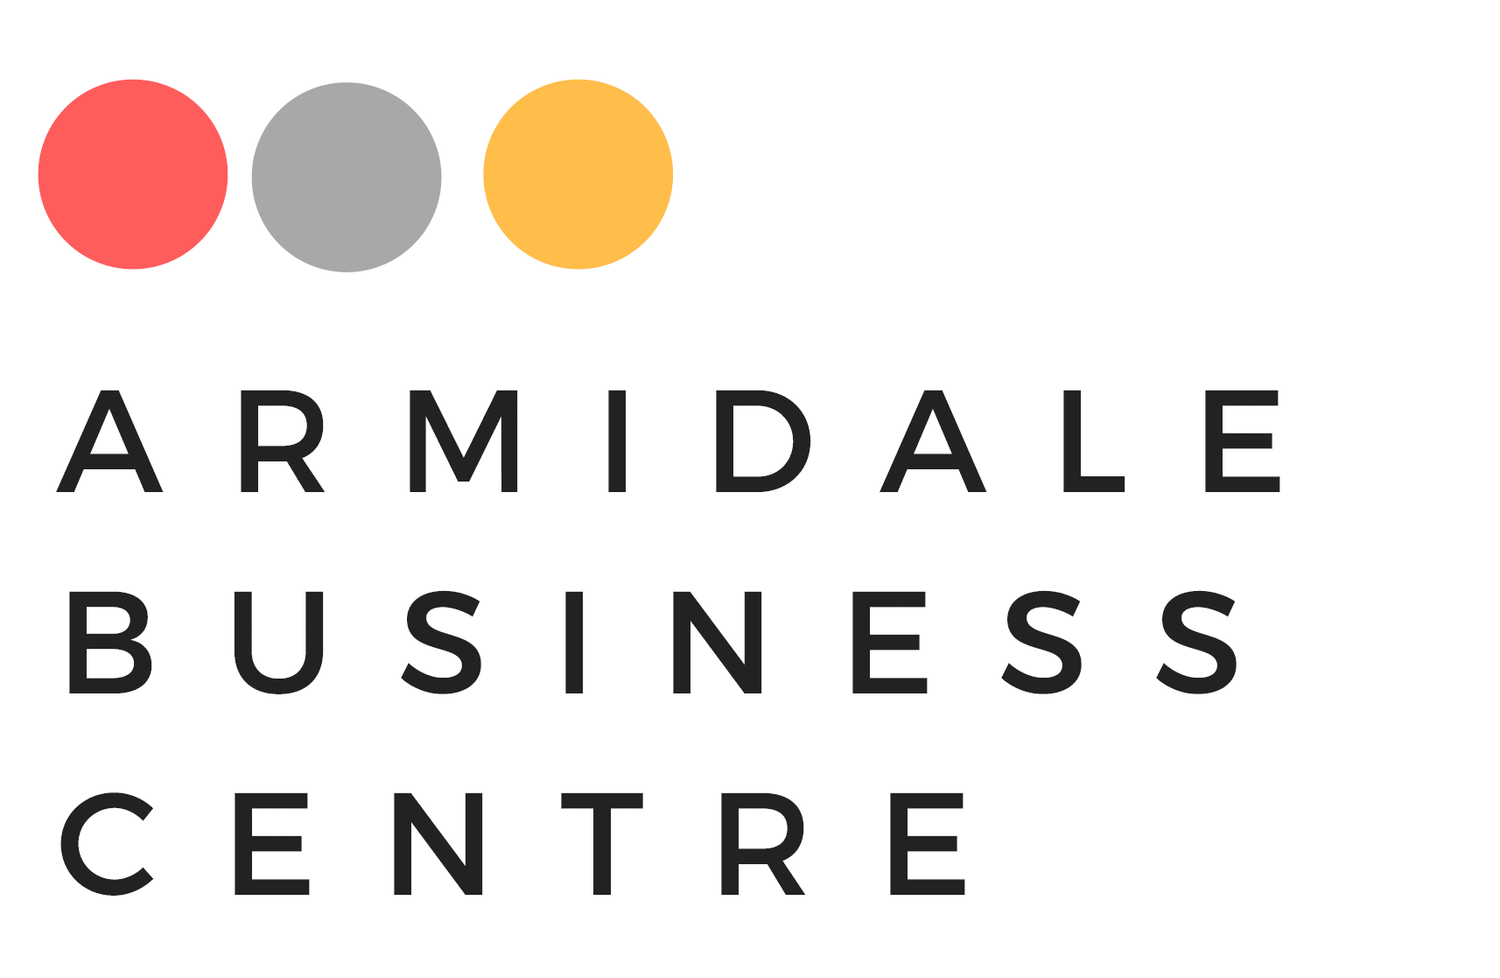 Armidale Business Centre